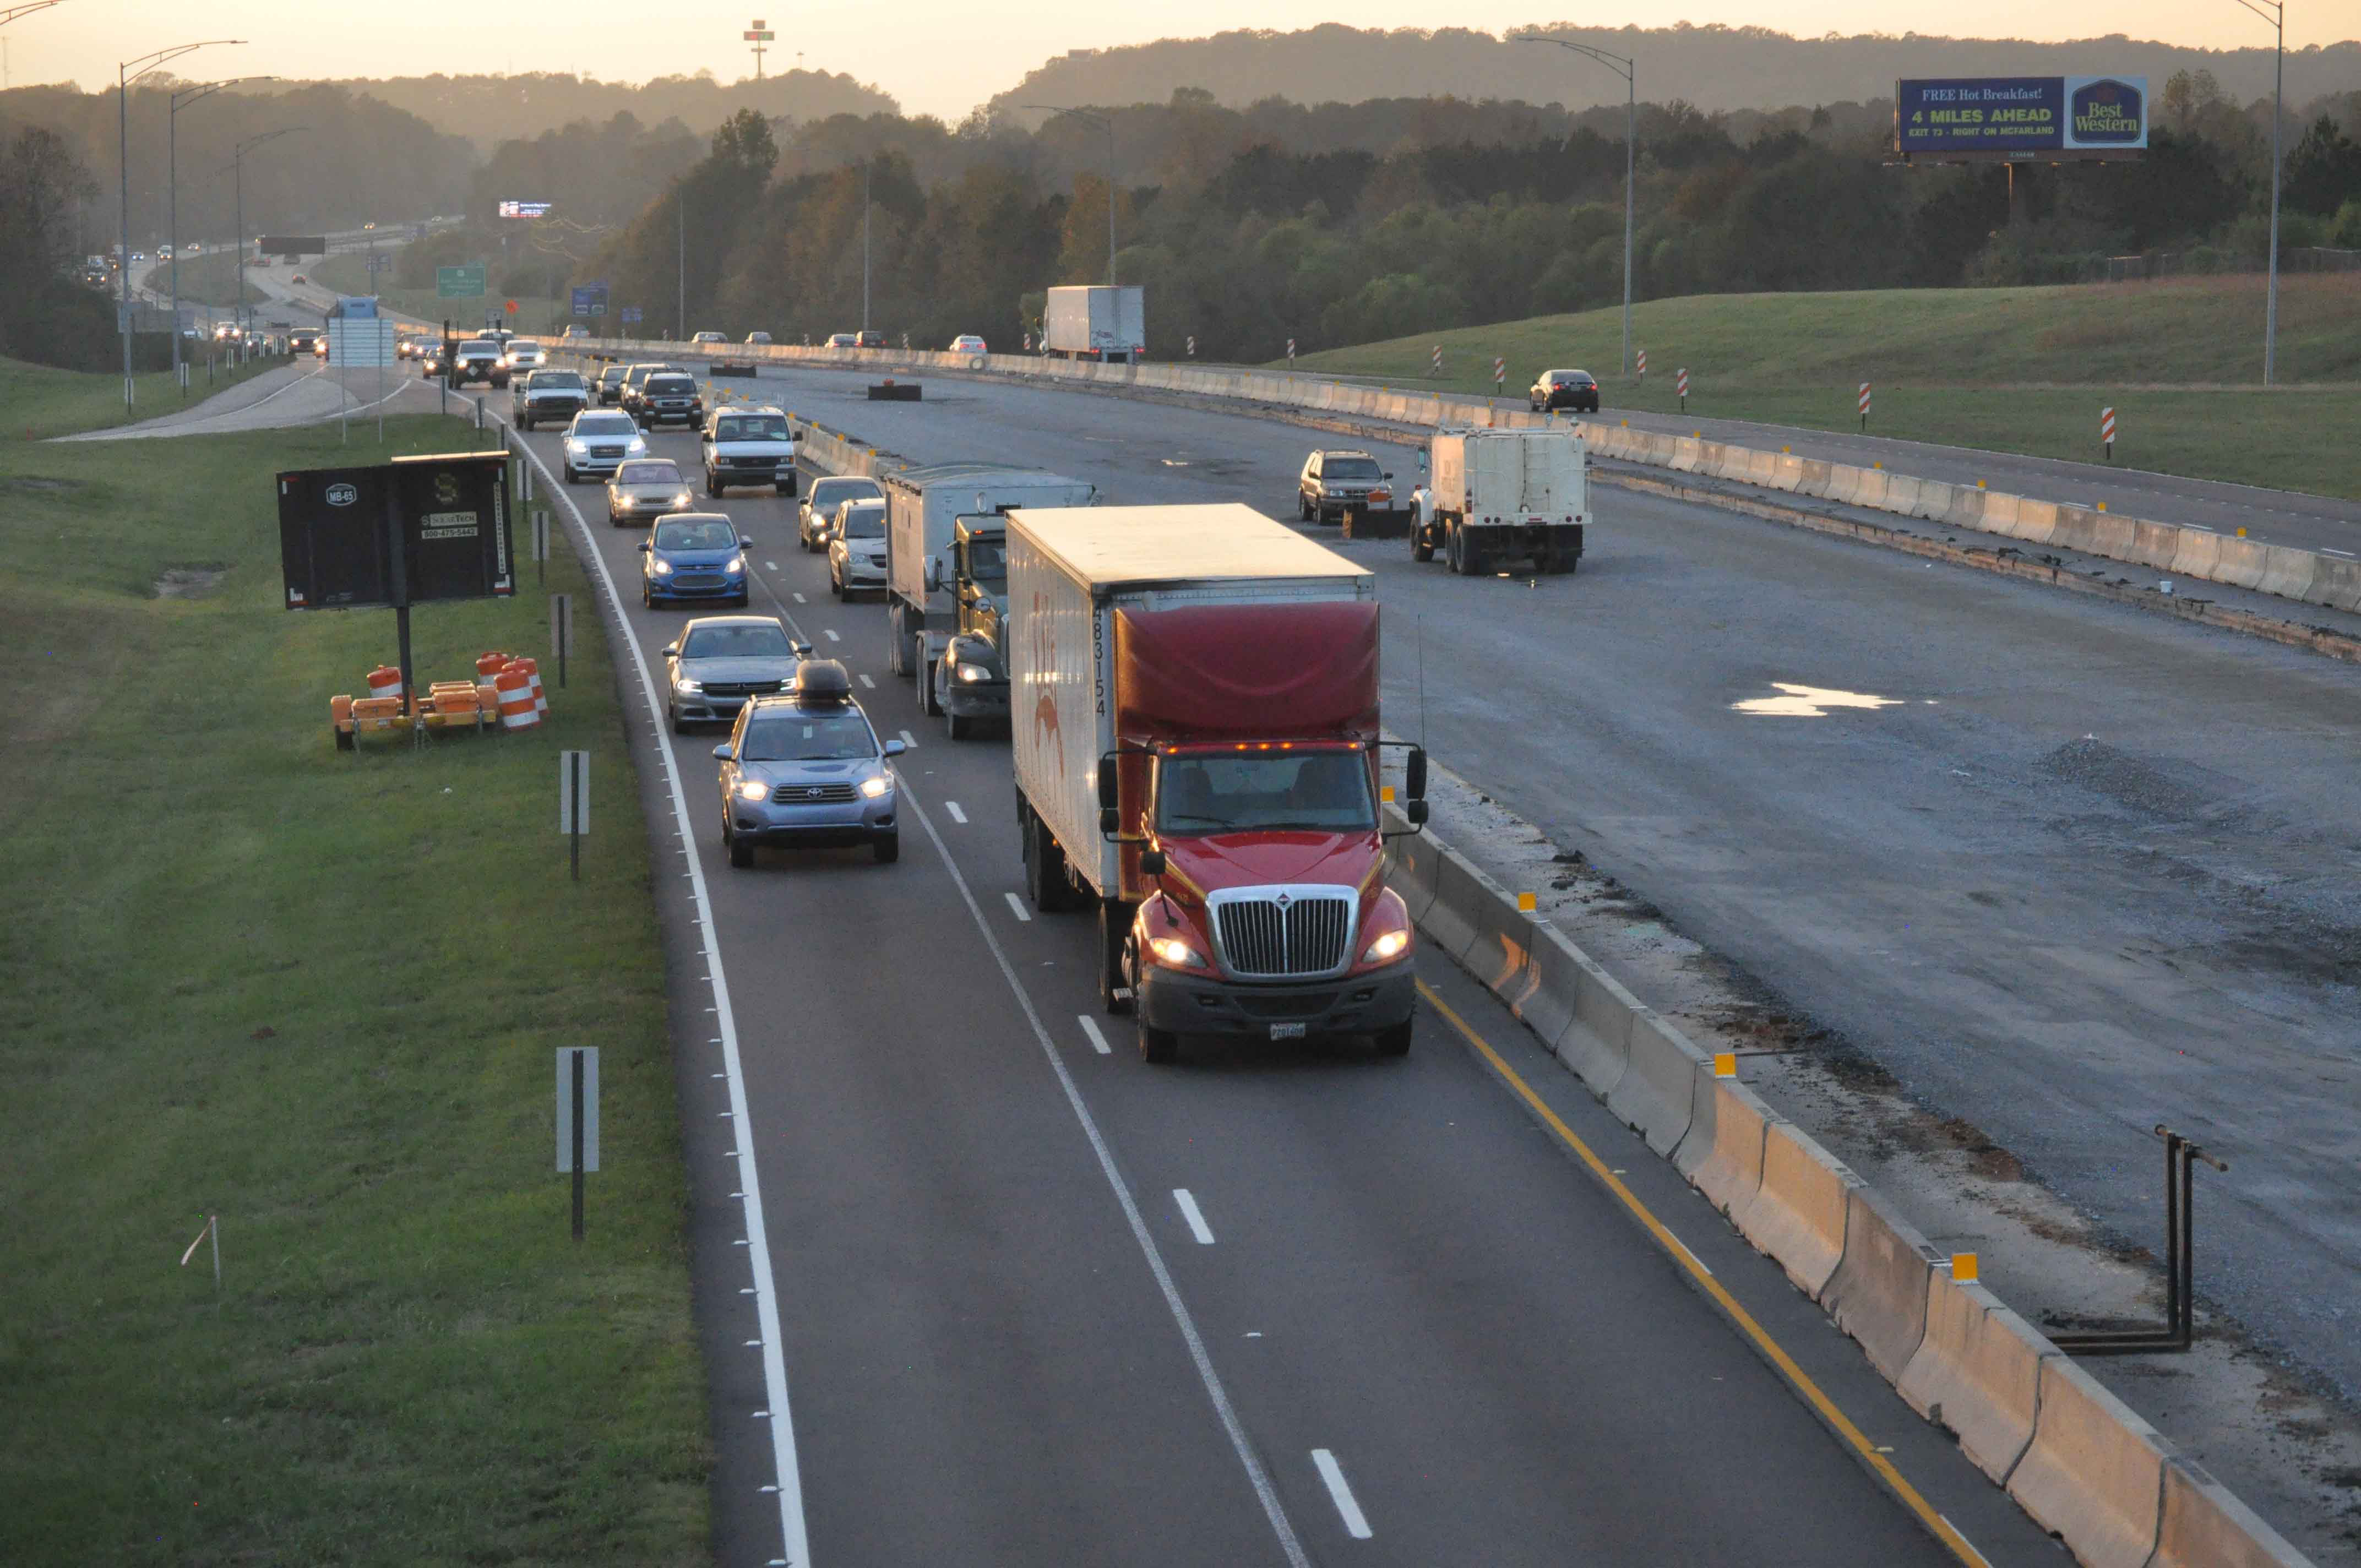 ATA calls speed limiter mandate proposal flawed, says it won't support rule as published